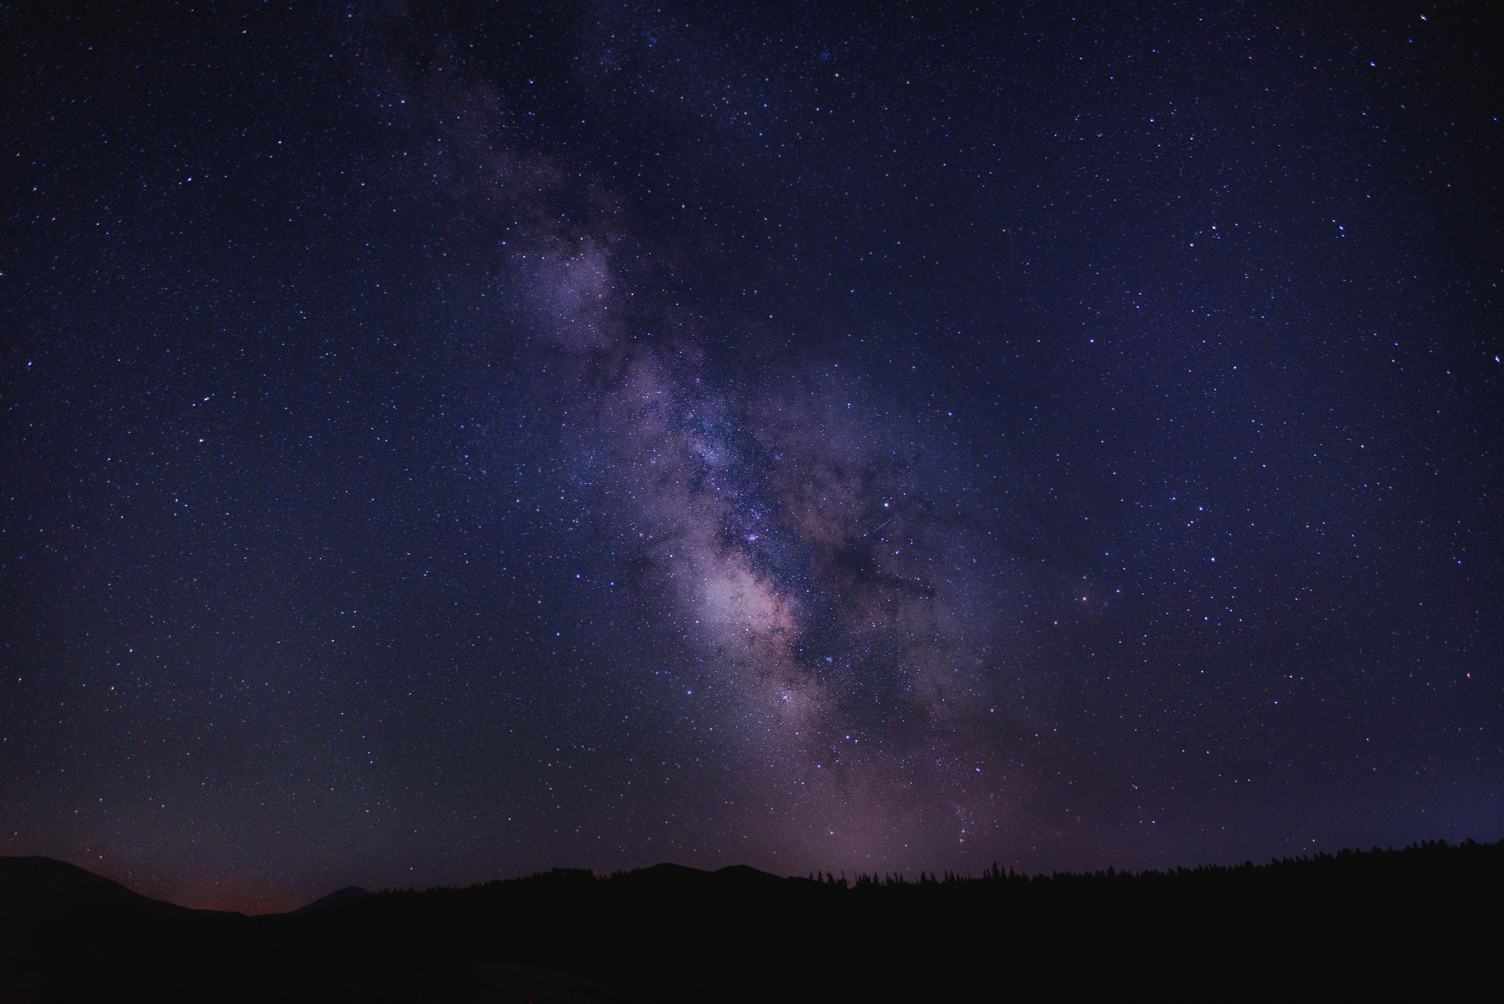 Violet Sky with Stars at Night